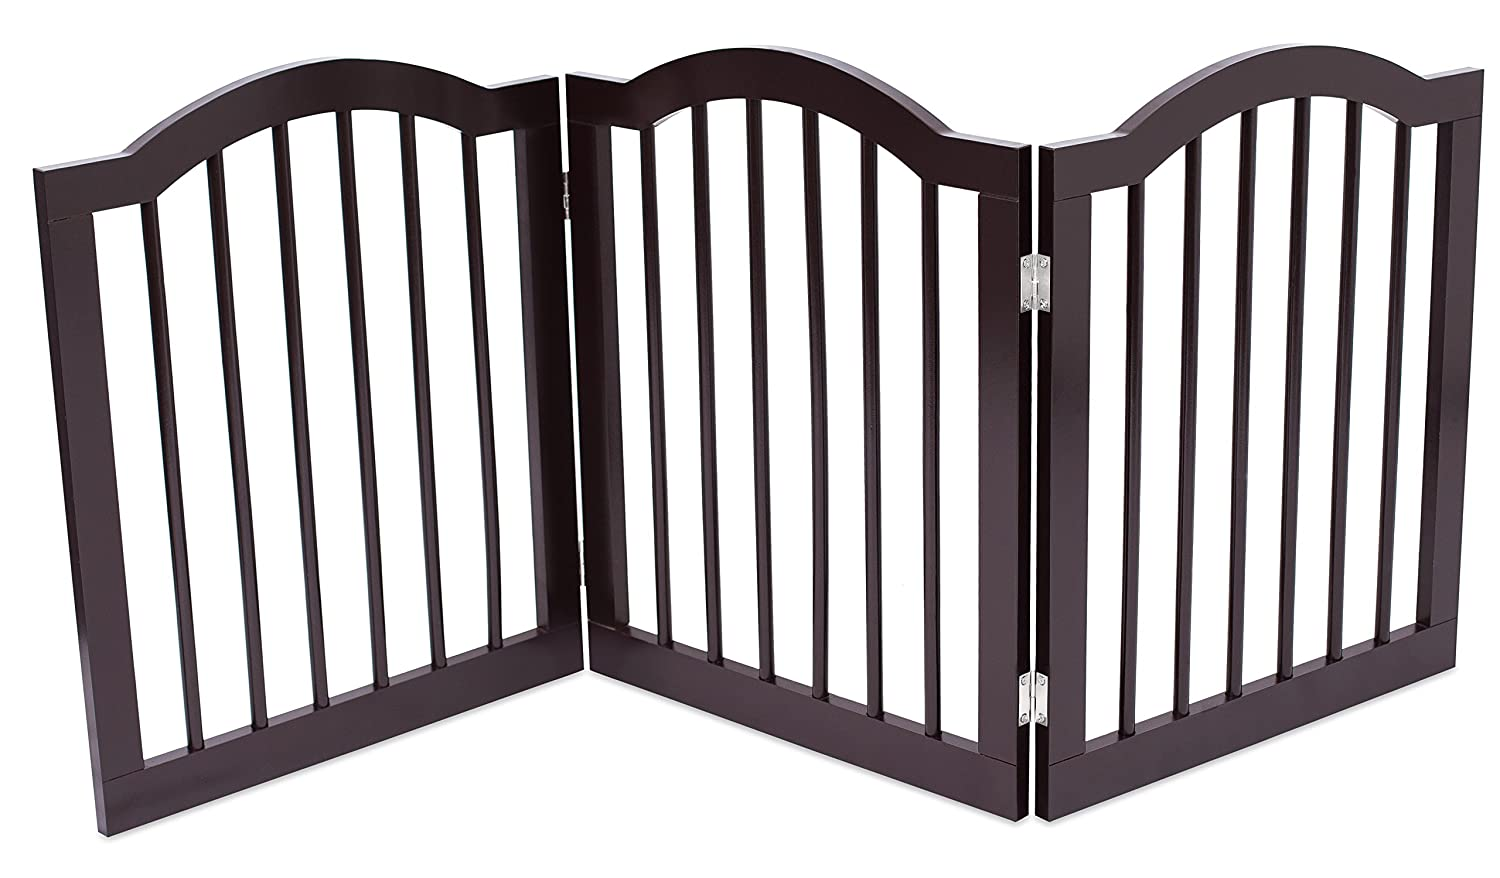 Internet's Best Pet Gate with Arched Top | 3 Panel | 24 Inch Step Over Fence | Free Standing Folding Z Shape Indoor Doorway Hall Stairs Dog Puppy Gate | Fully Assembled | Espresso | Wooden Internet' s Best